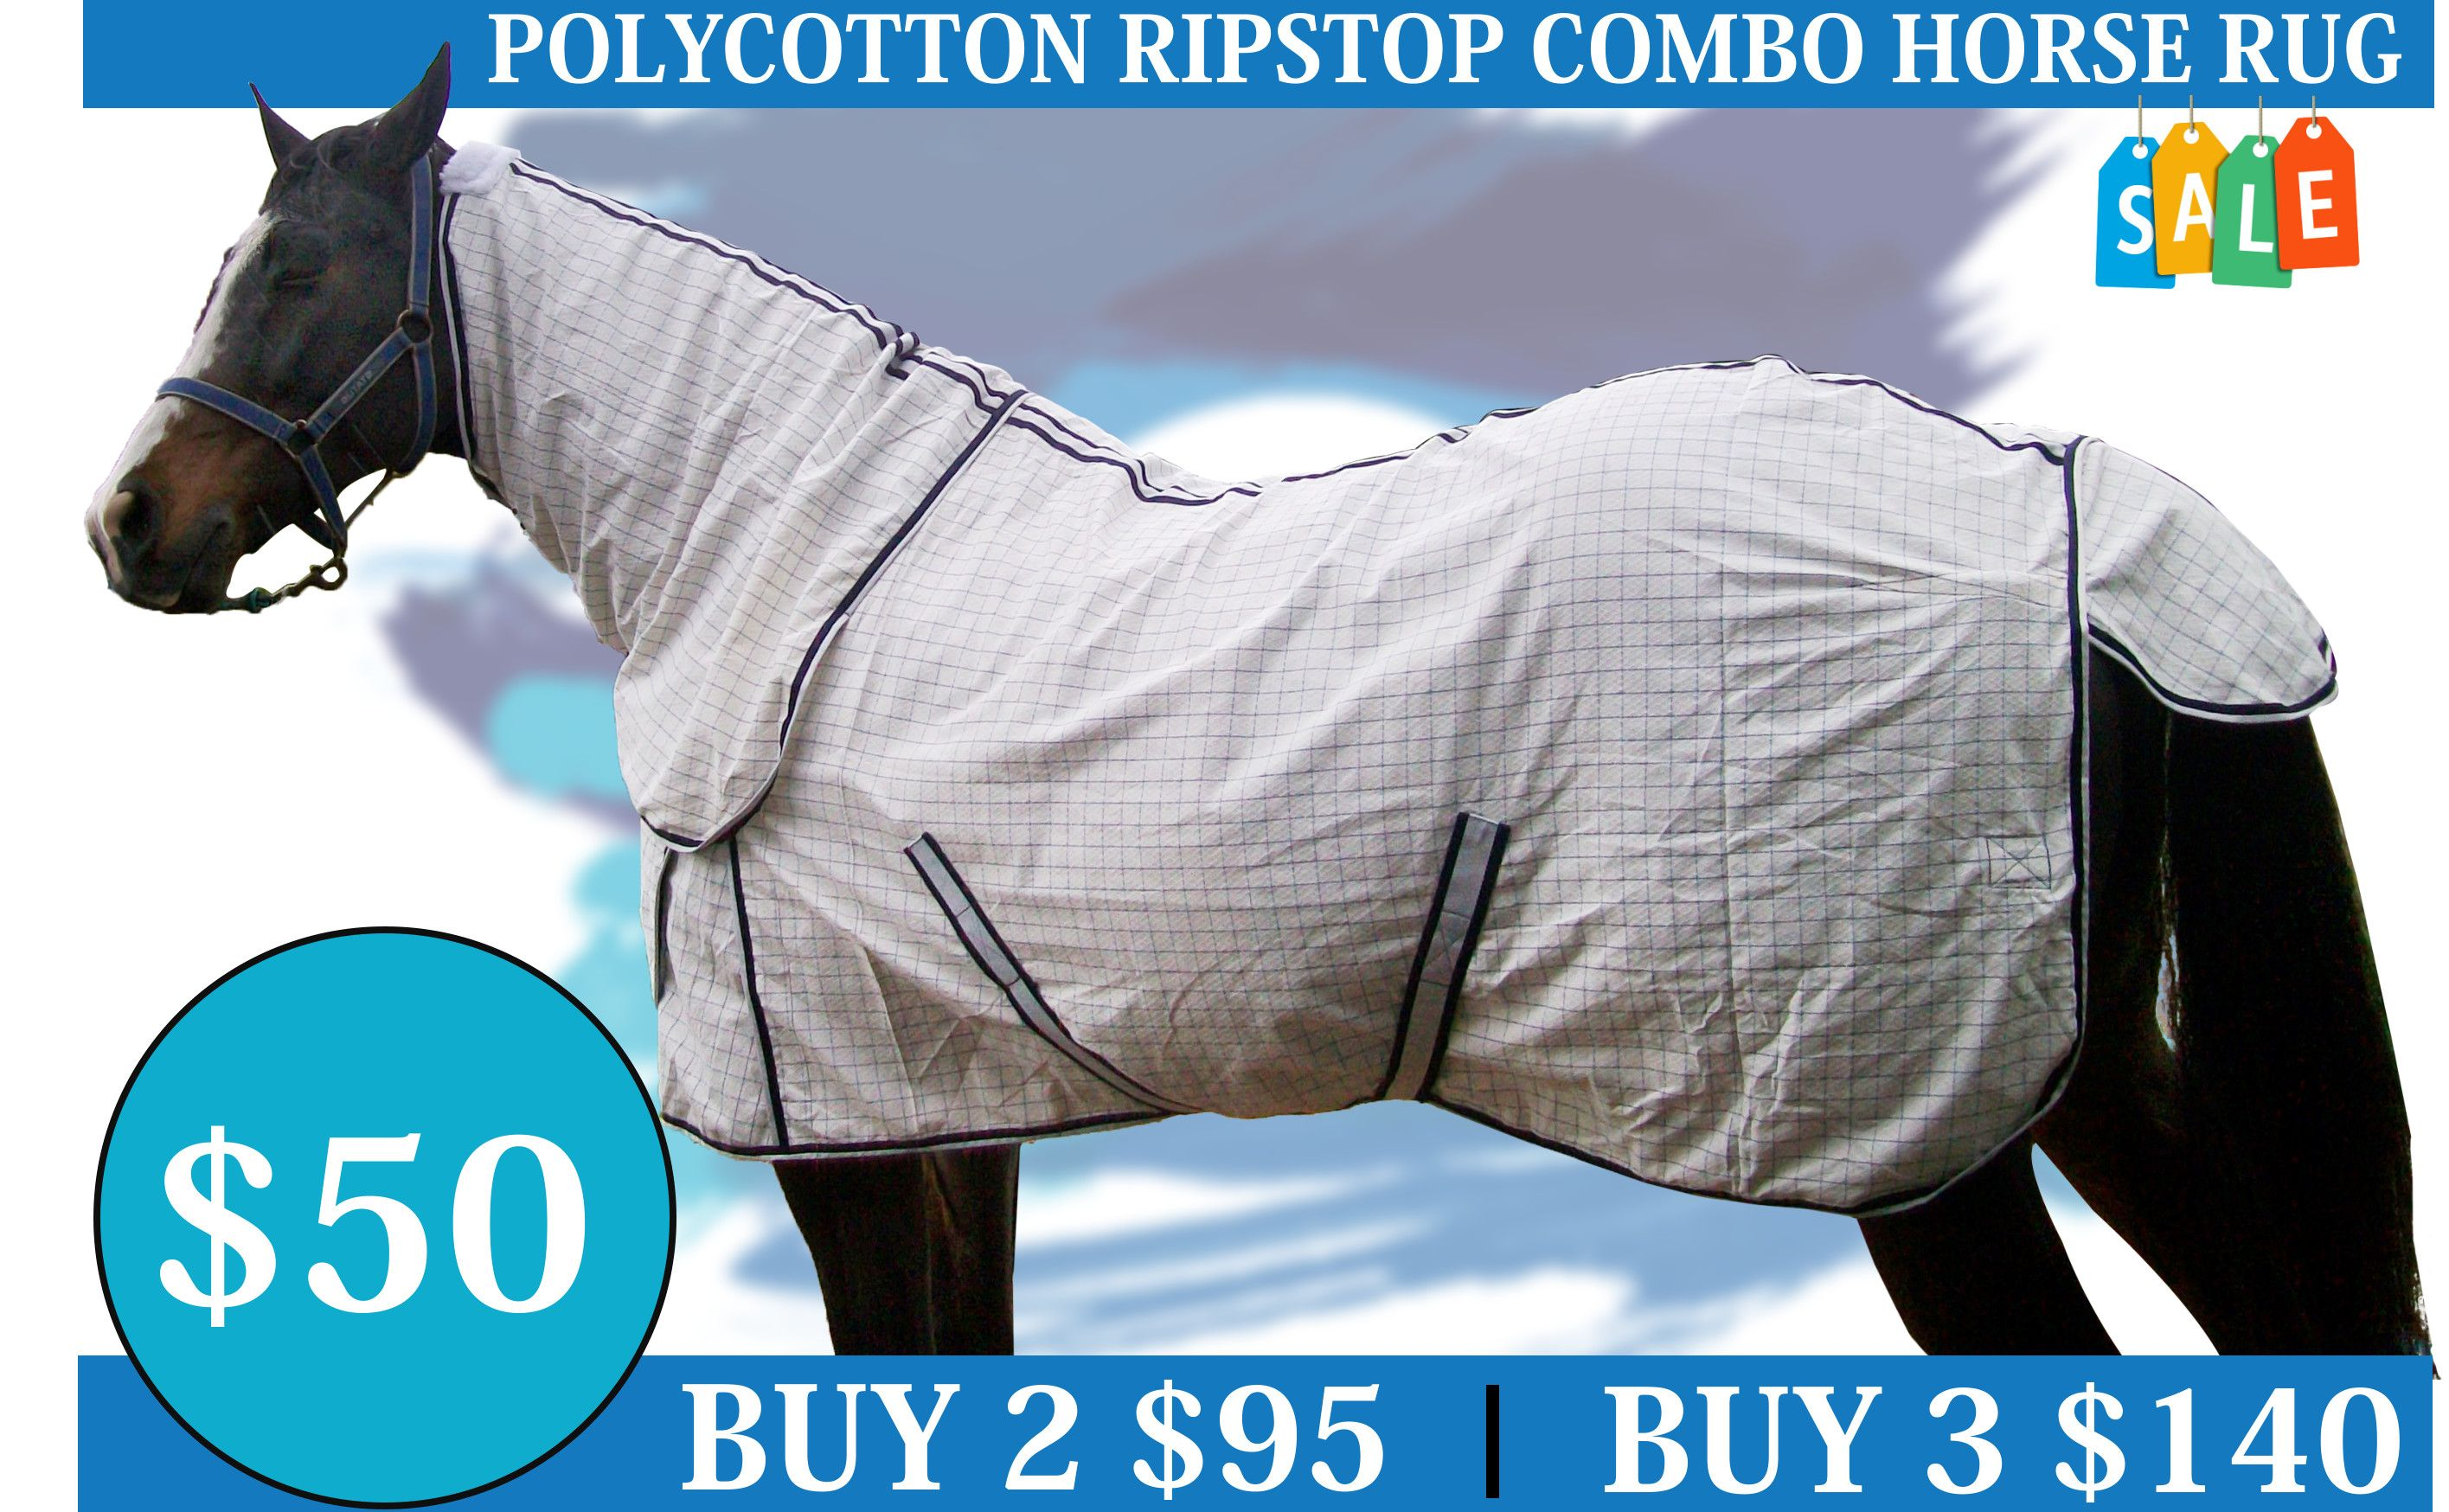 Diamond Weave Cotton Ripstop Attached Neck Combo Blue Check Horse Rug